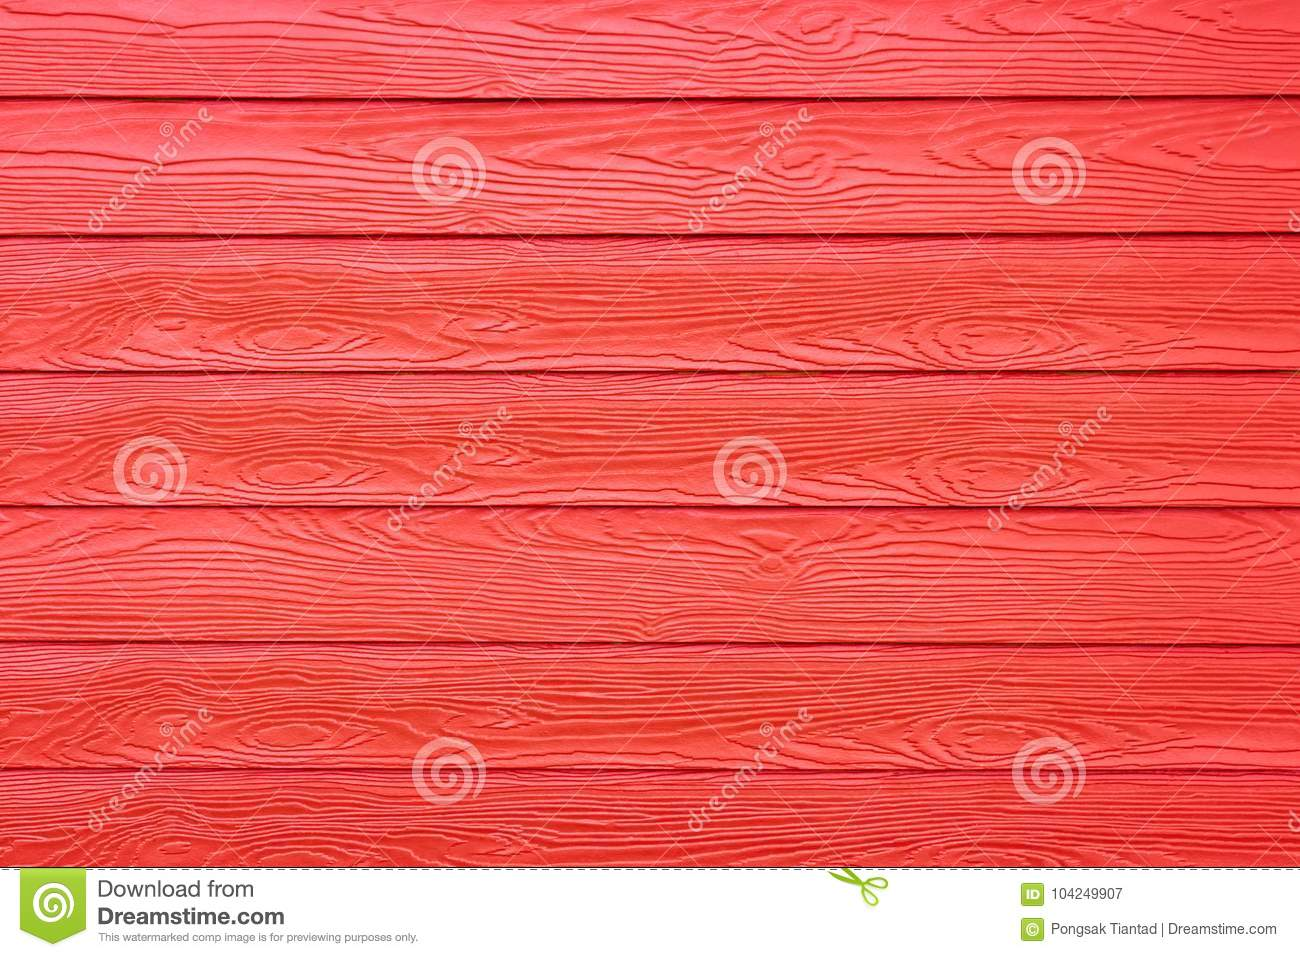 Red synthetic wood texture wall house.